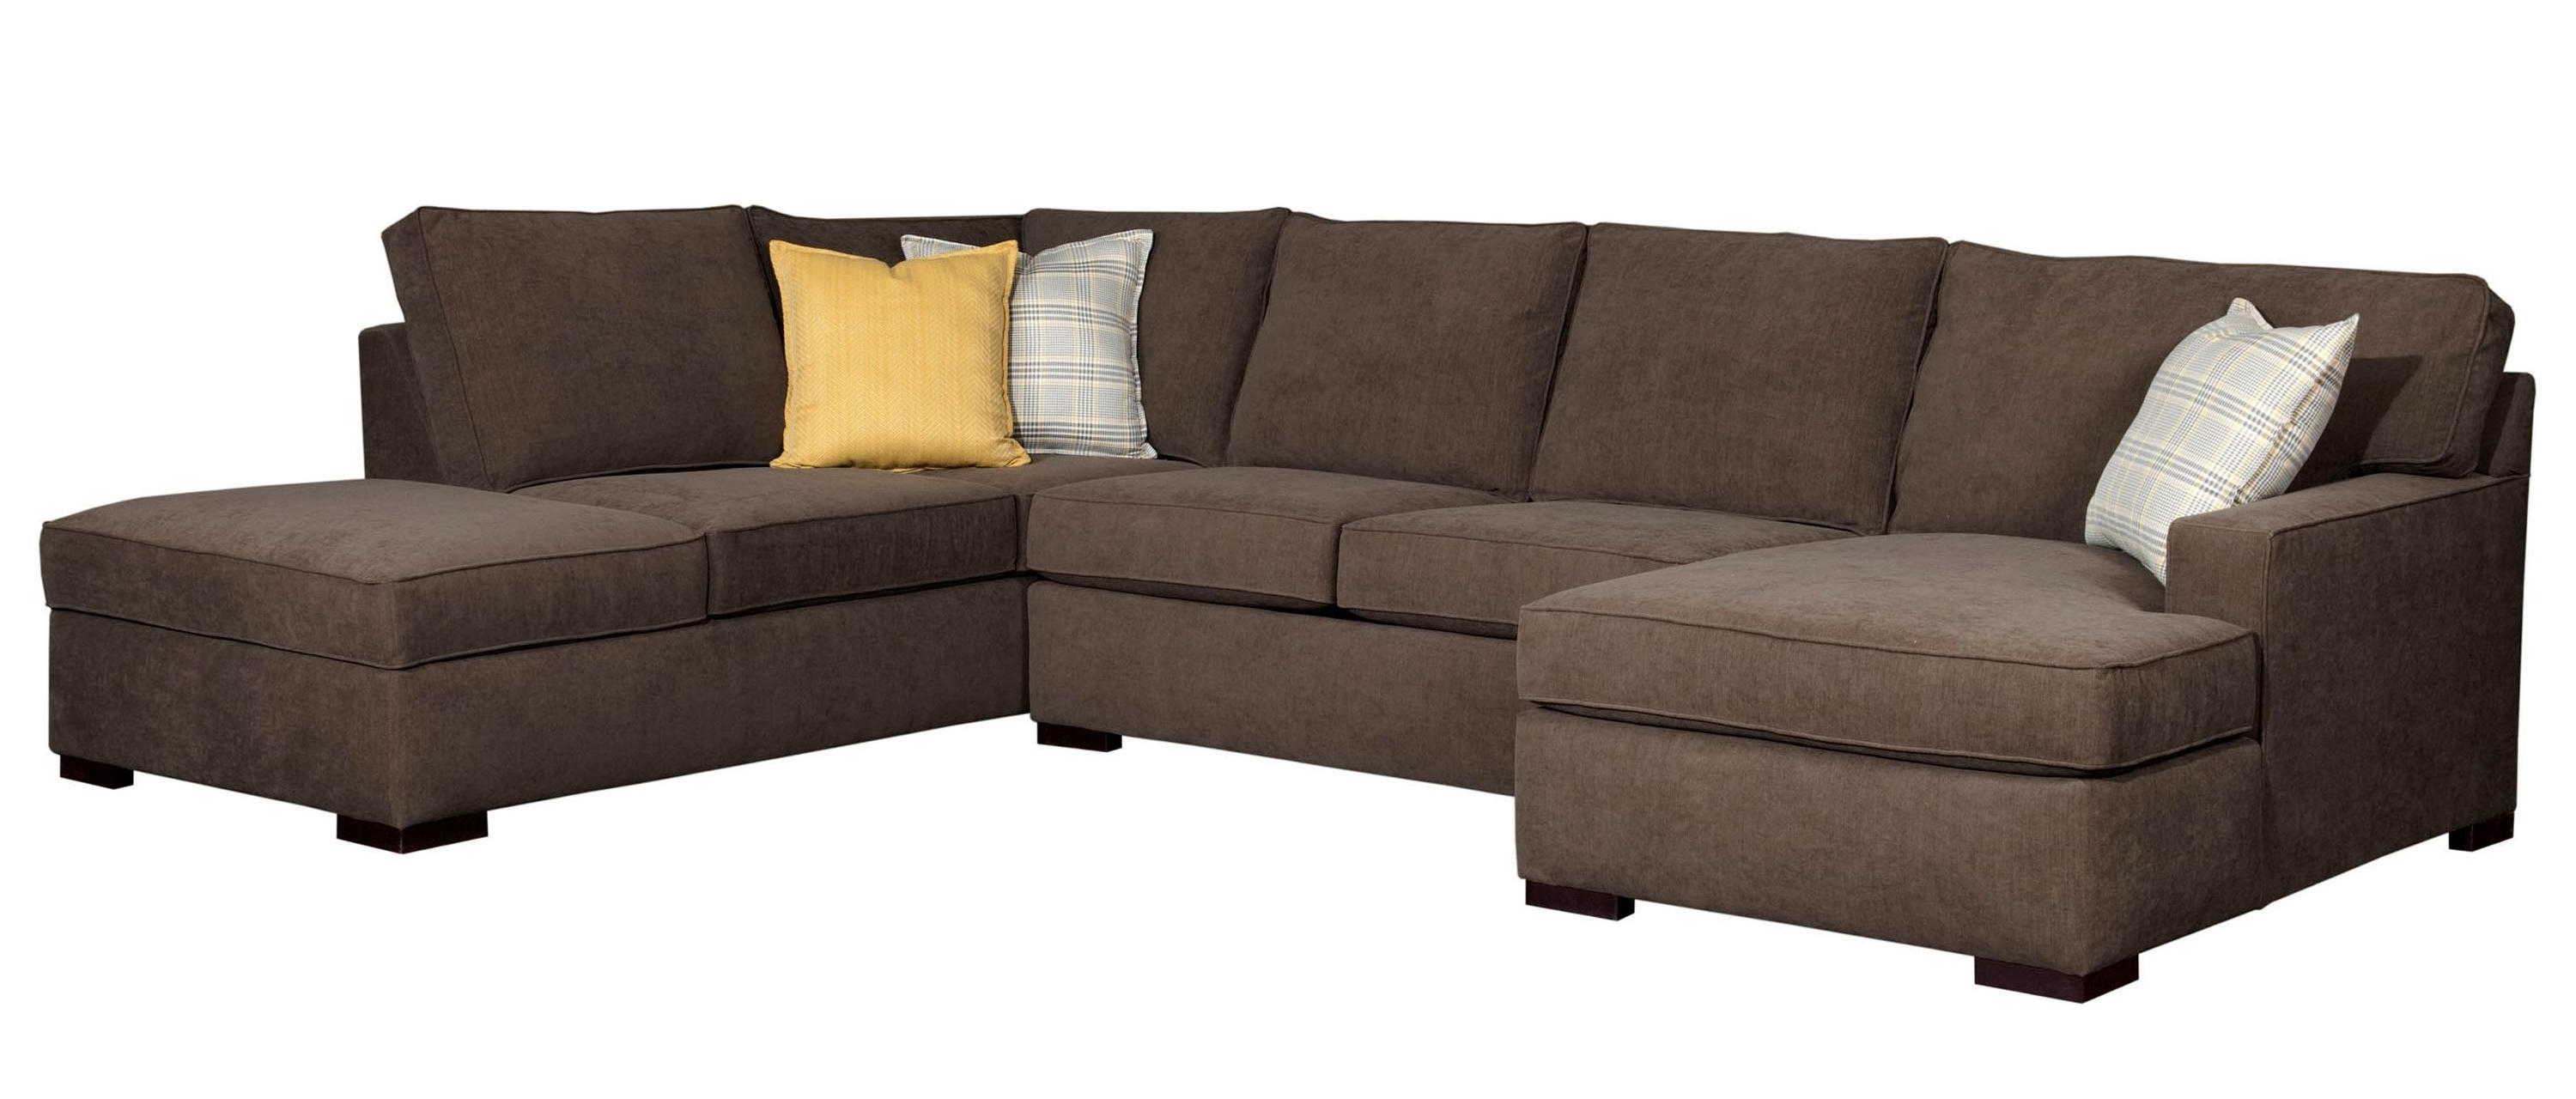 Broyhill Furniture Raphael Contemporary Sectional Sofa With Laf Within Well Known Tuscaloosa Sectional Sofas (View 2 of 15)